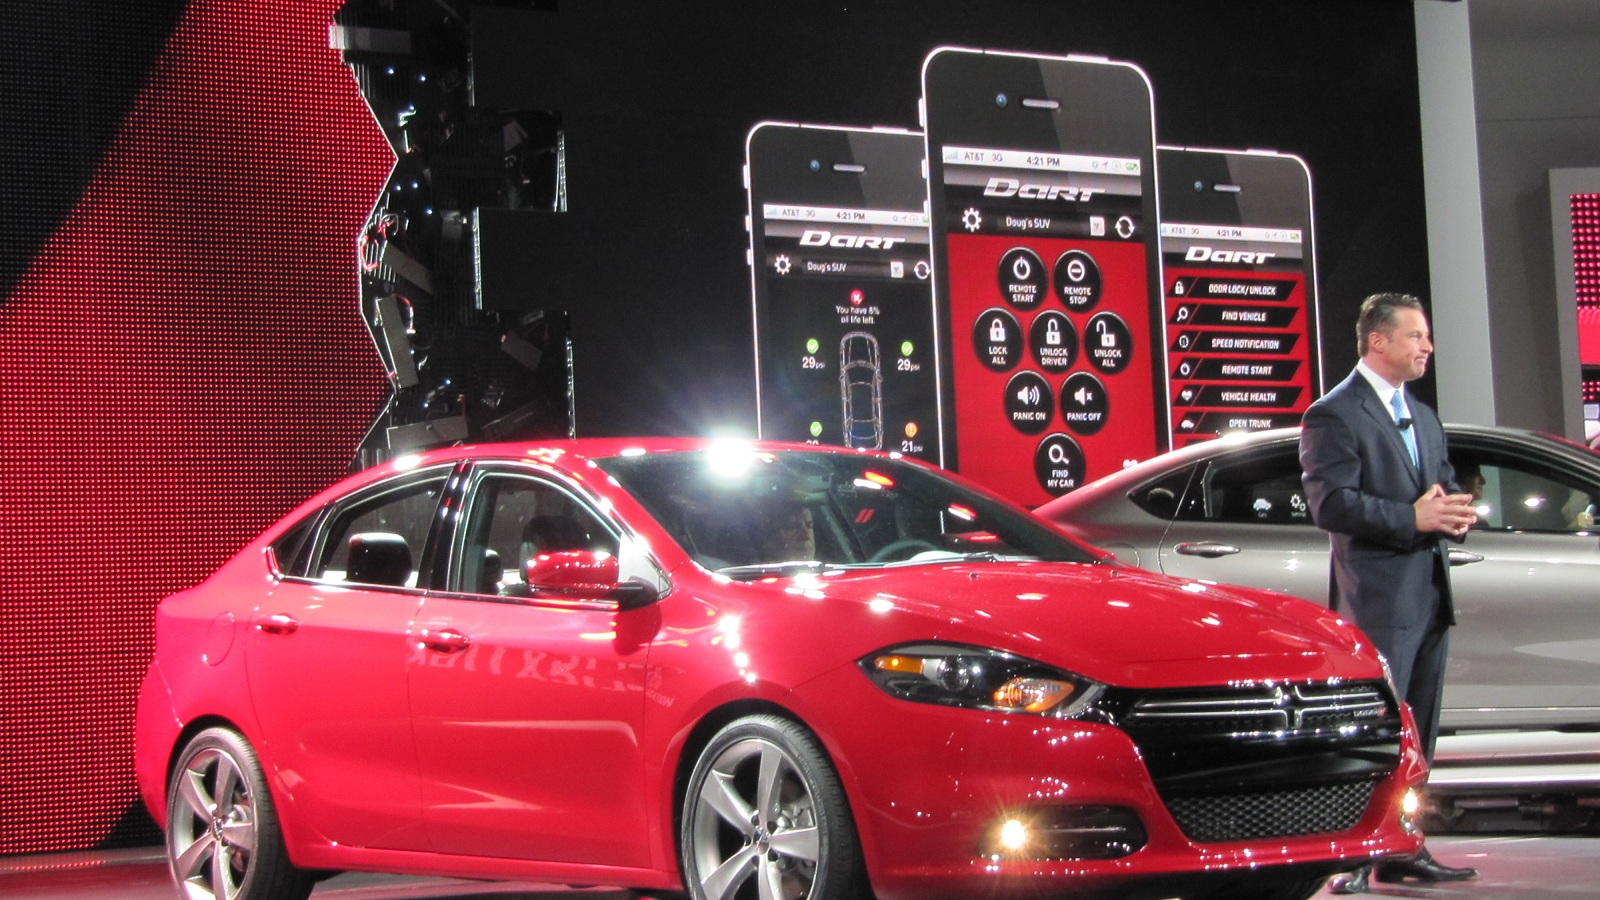 2013 Dodge Dart launch at Detroit Auto Show, Jan 2012